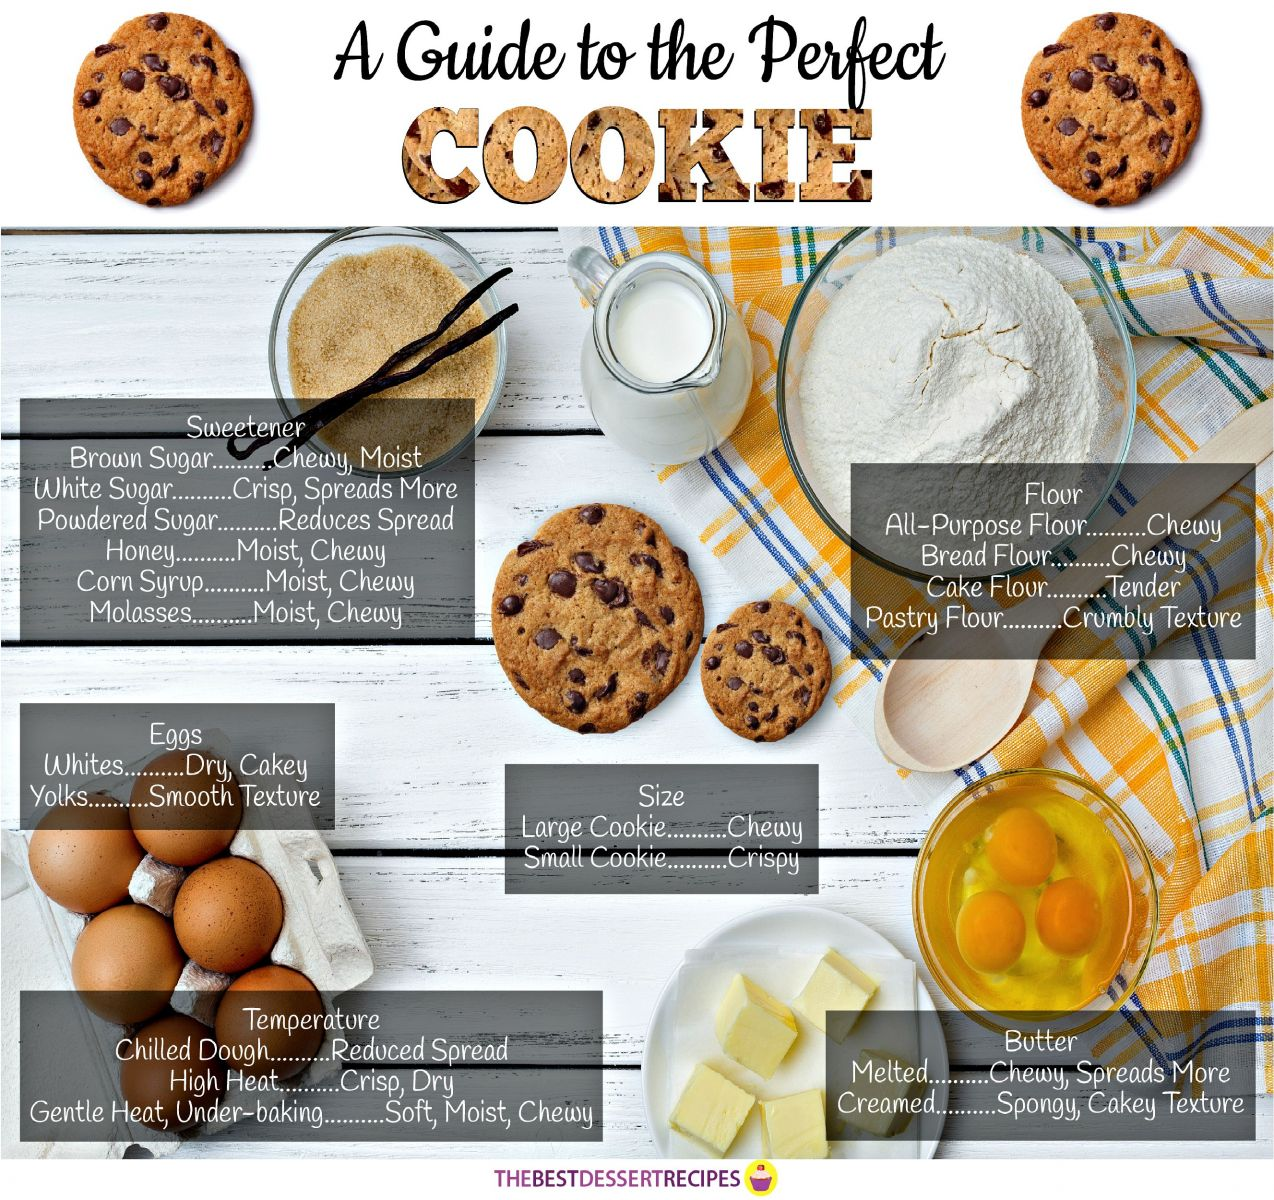 A Guide to the Perfect Cookie